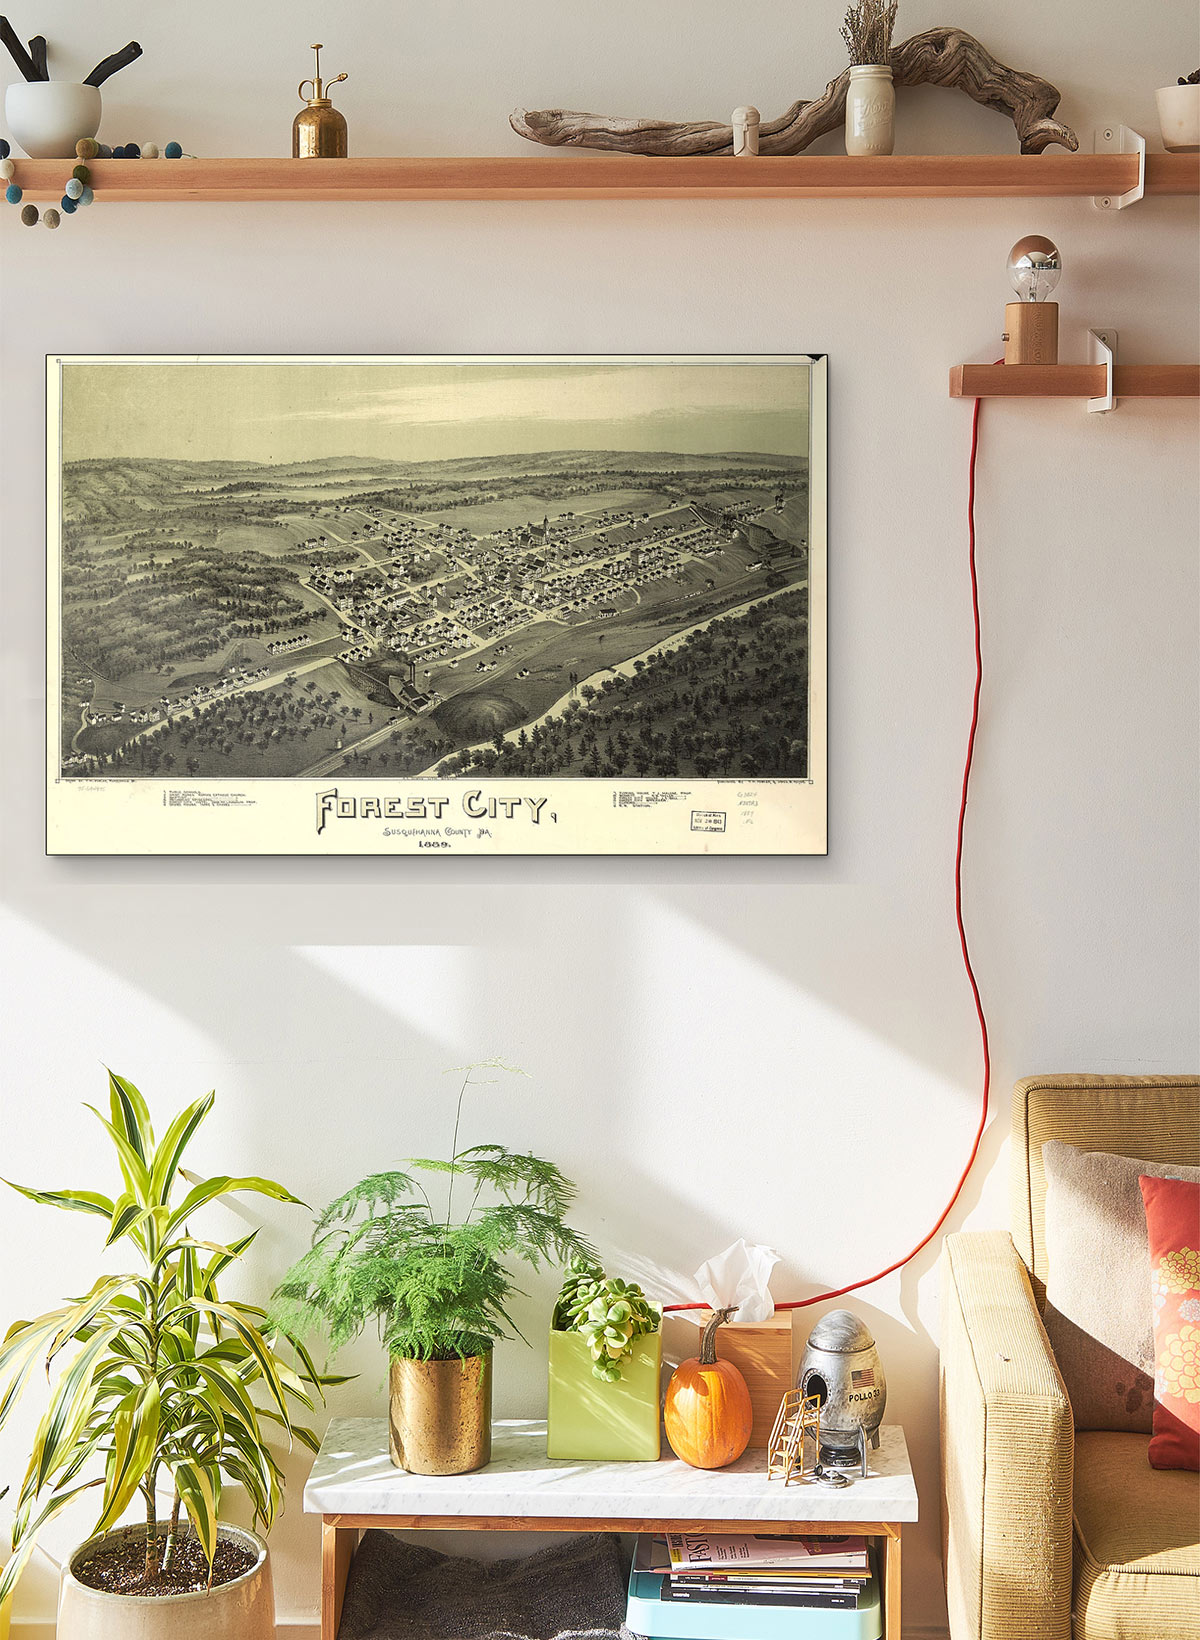 Forest City Susquehanna County Pa 1889 LARGE Vintage Map